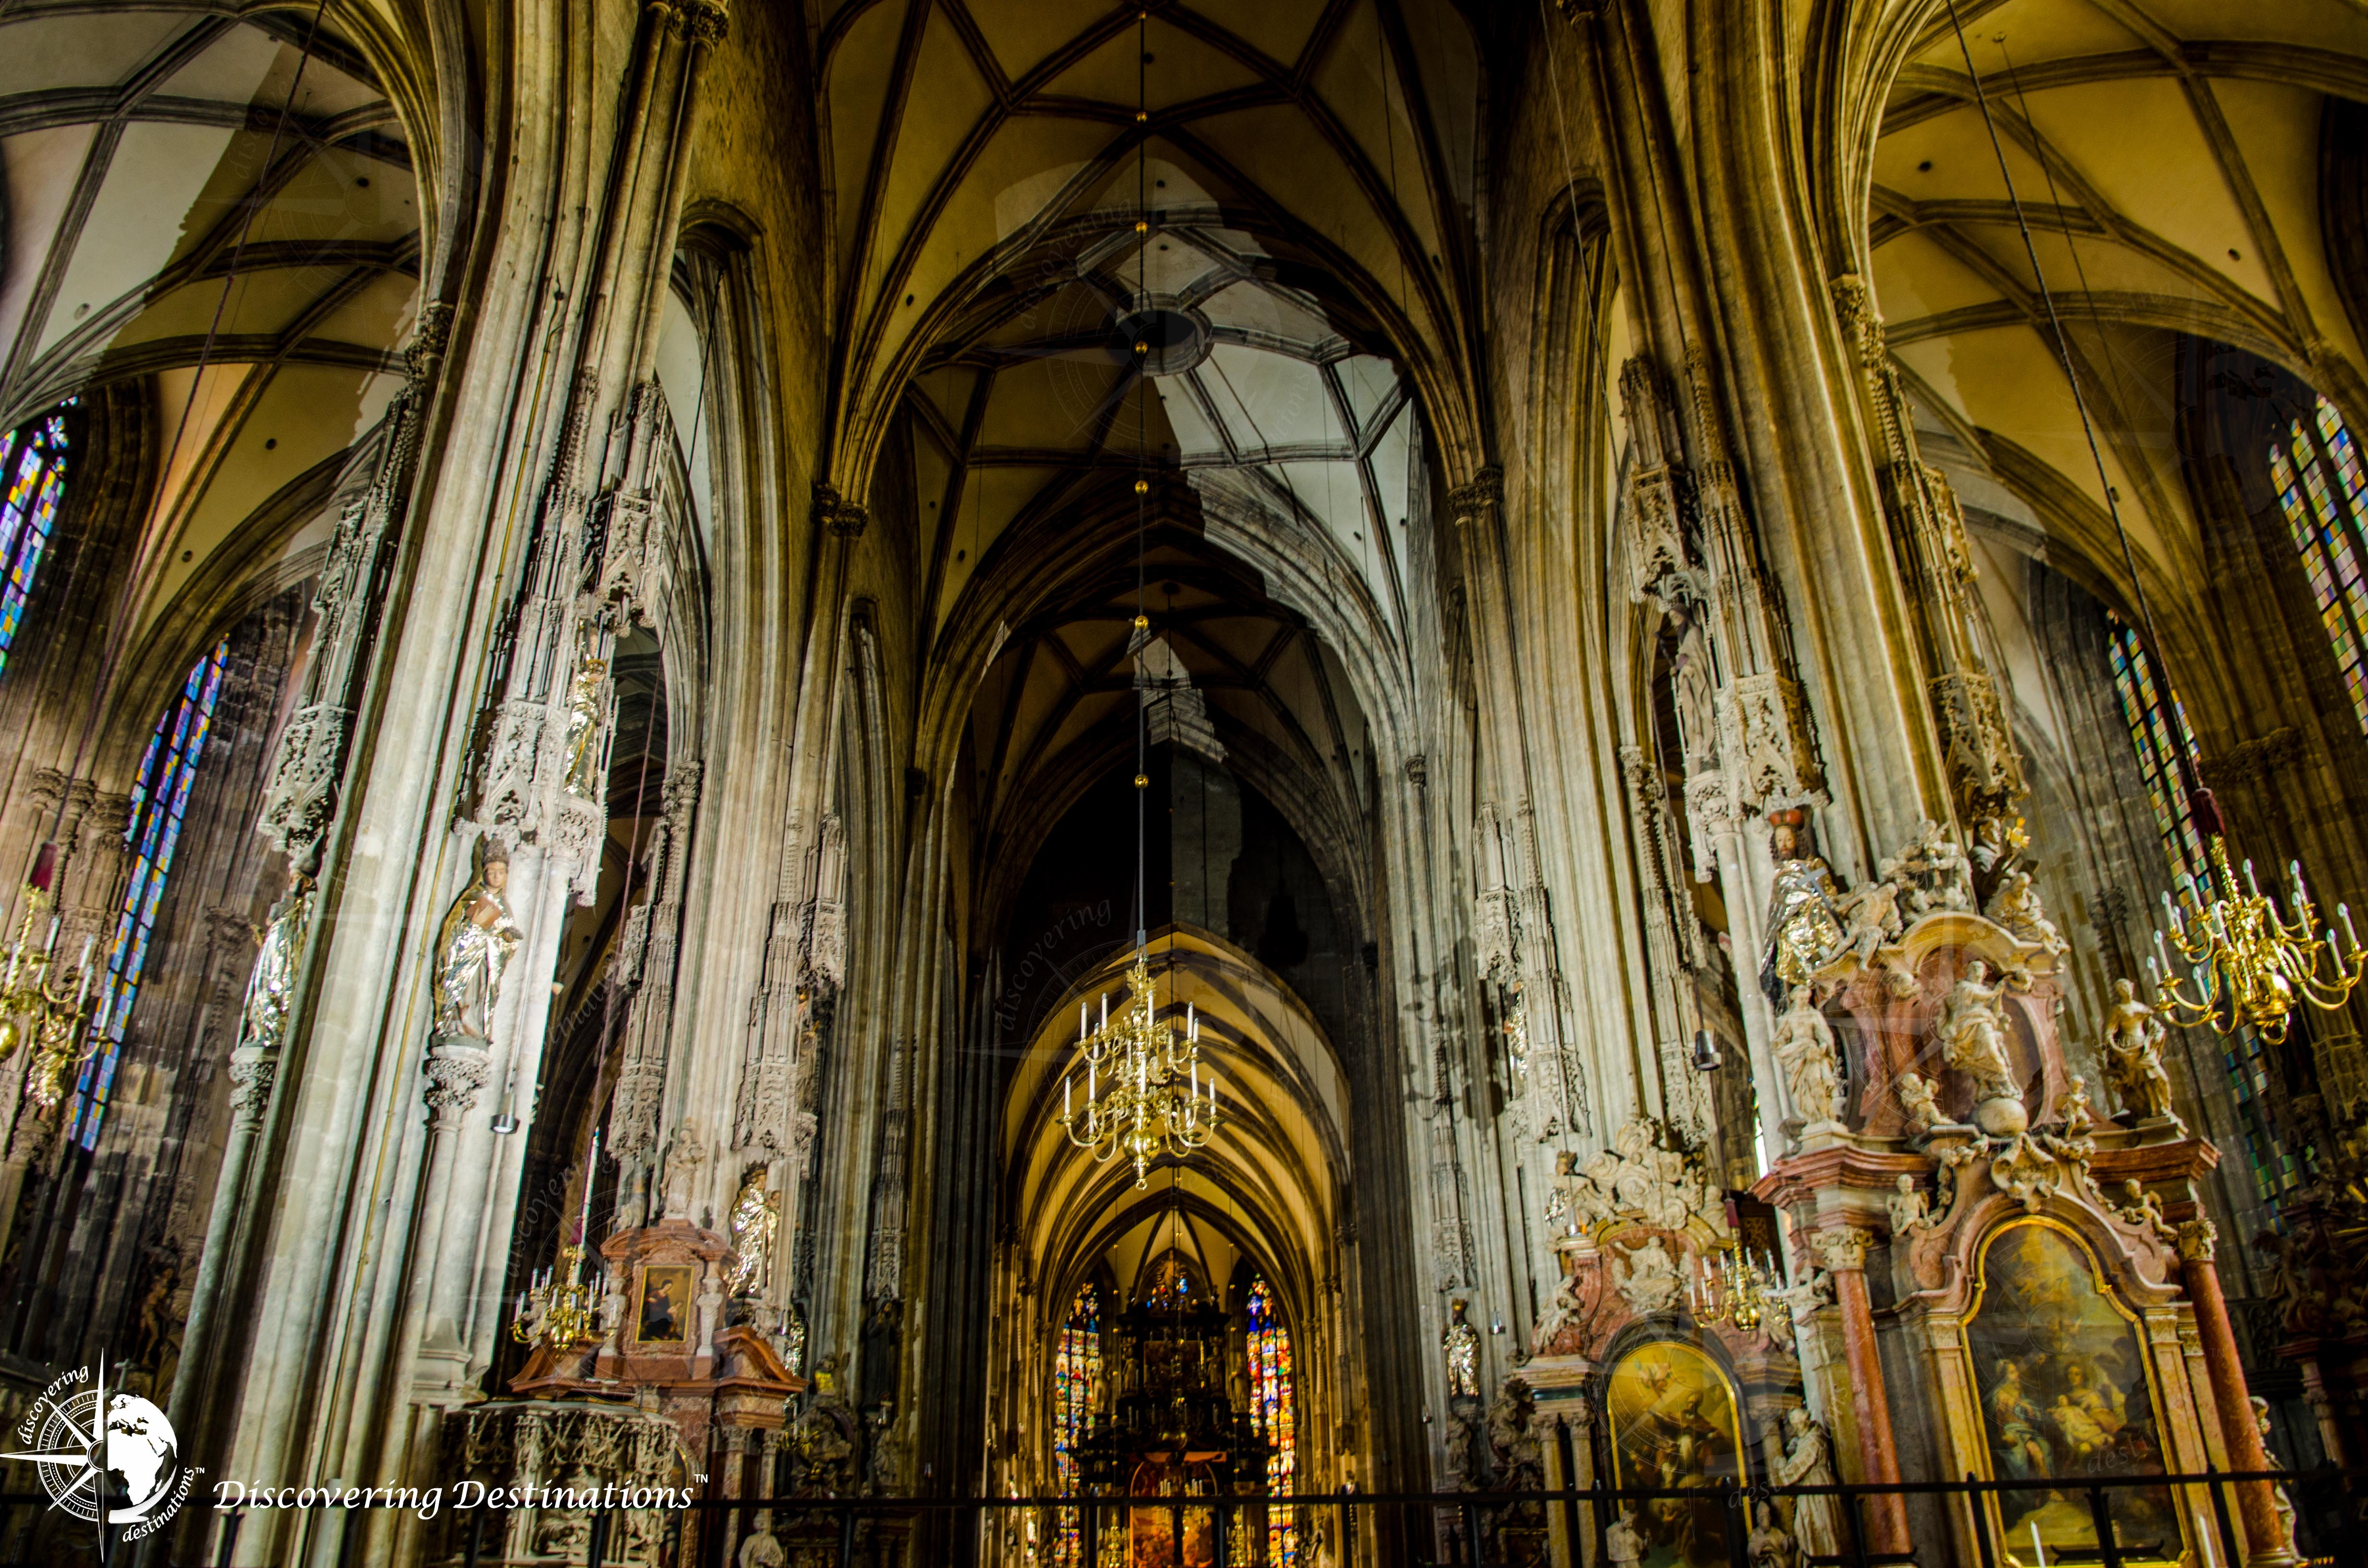 Discovering St Stephen's Cathedral